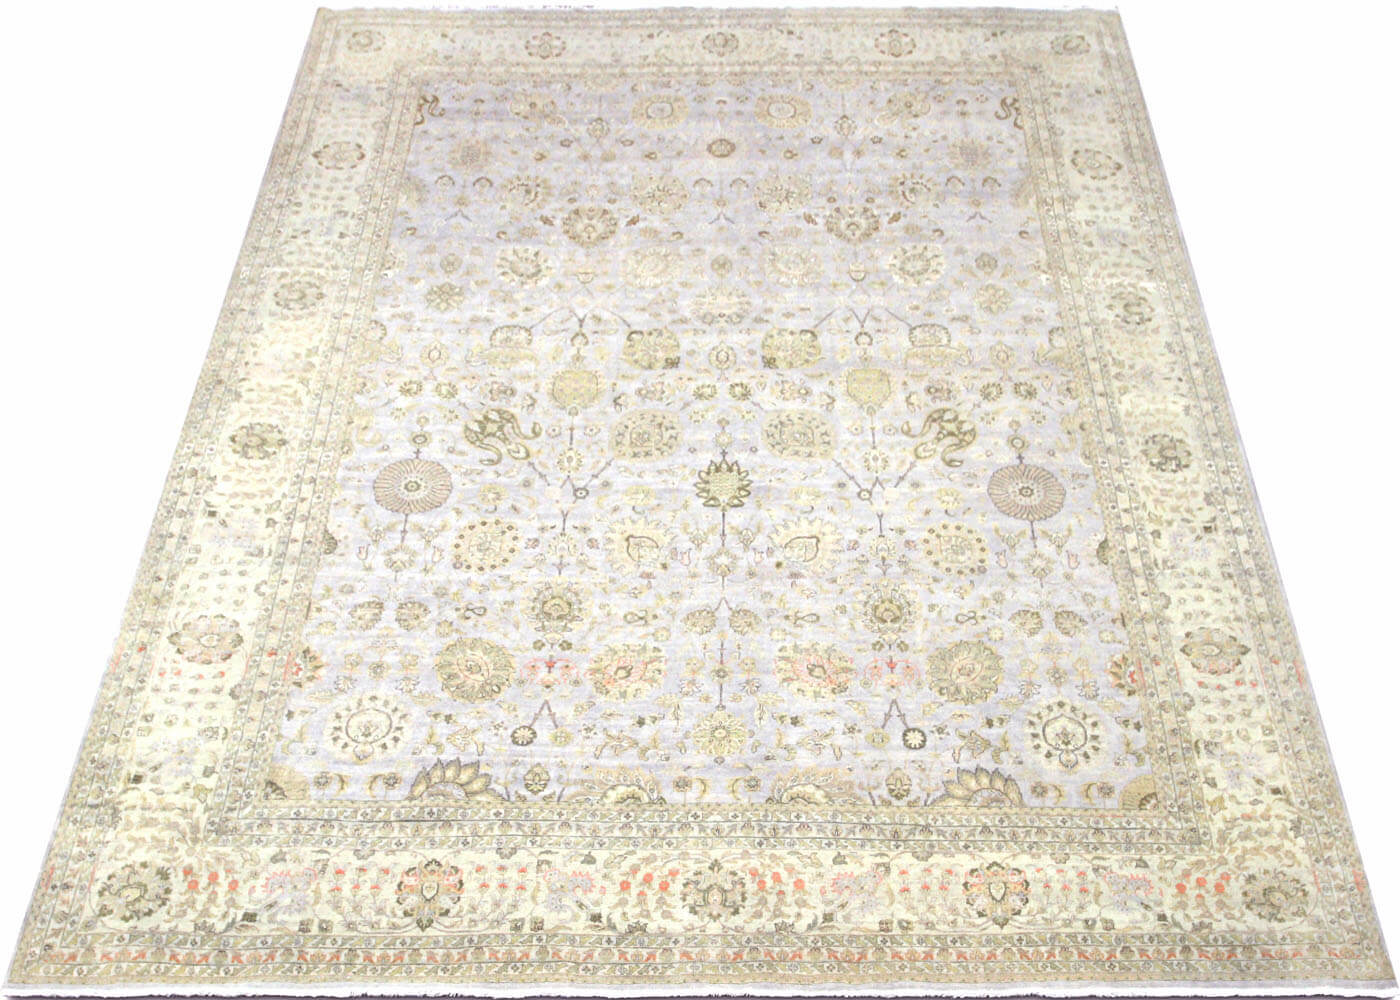 "Vintage Persian Tabriz Carpet - 11'10"" x 15'0"""